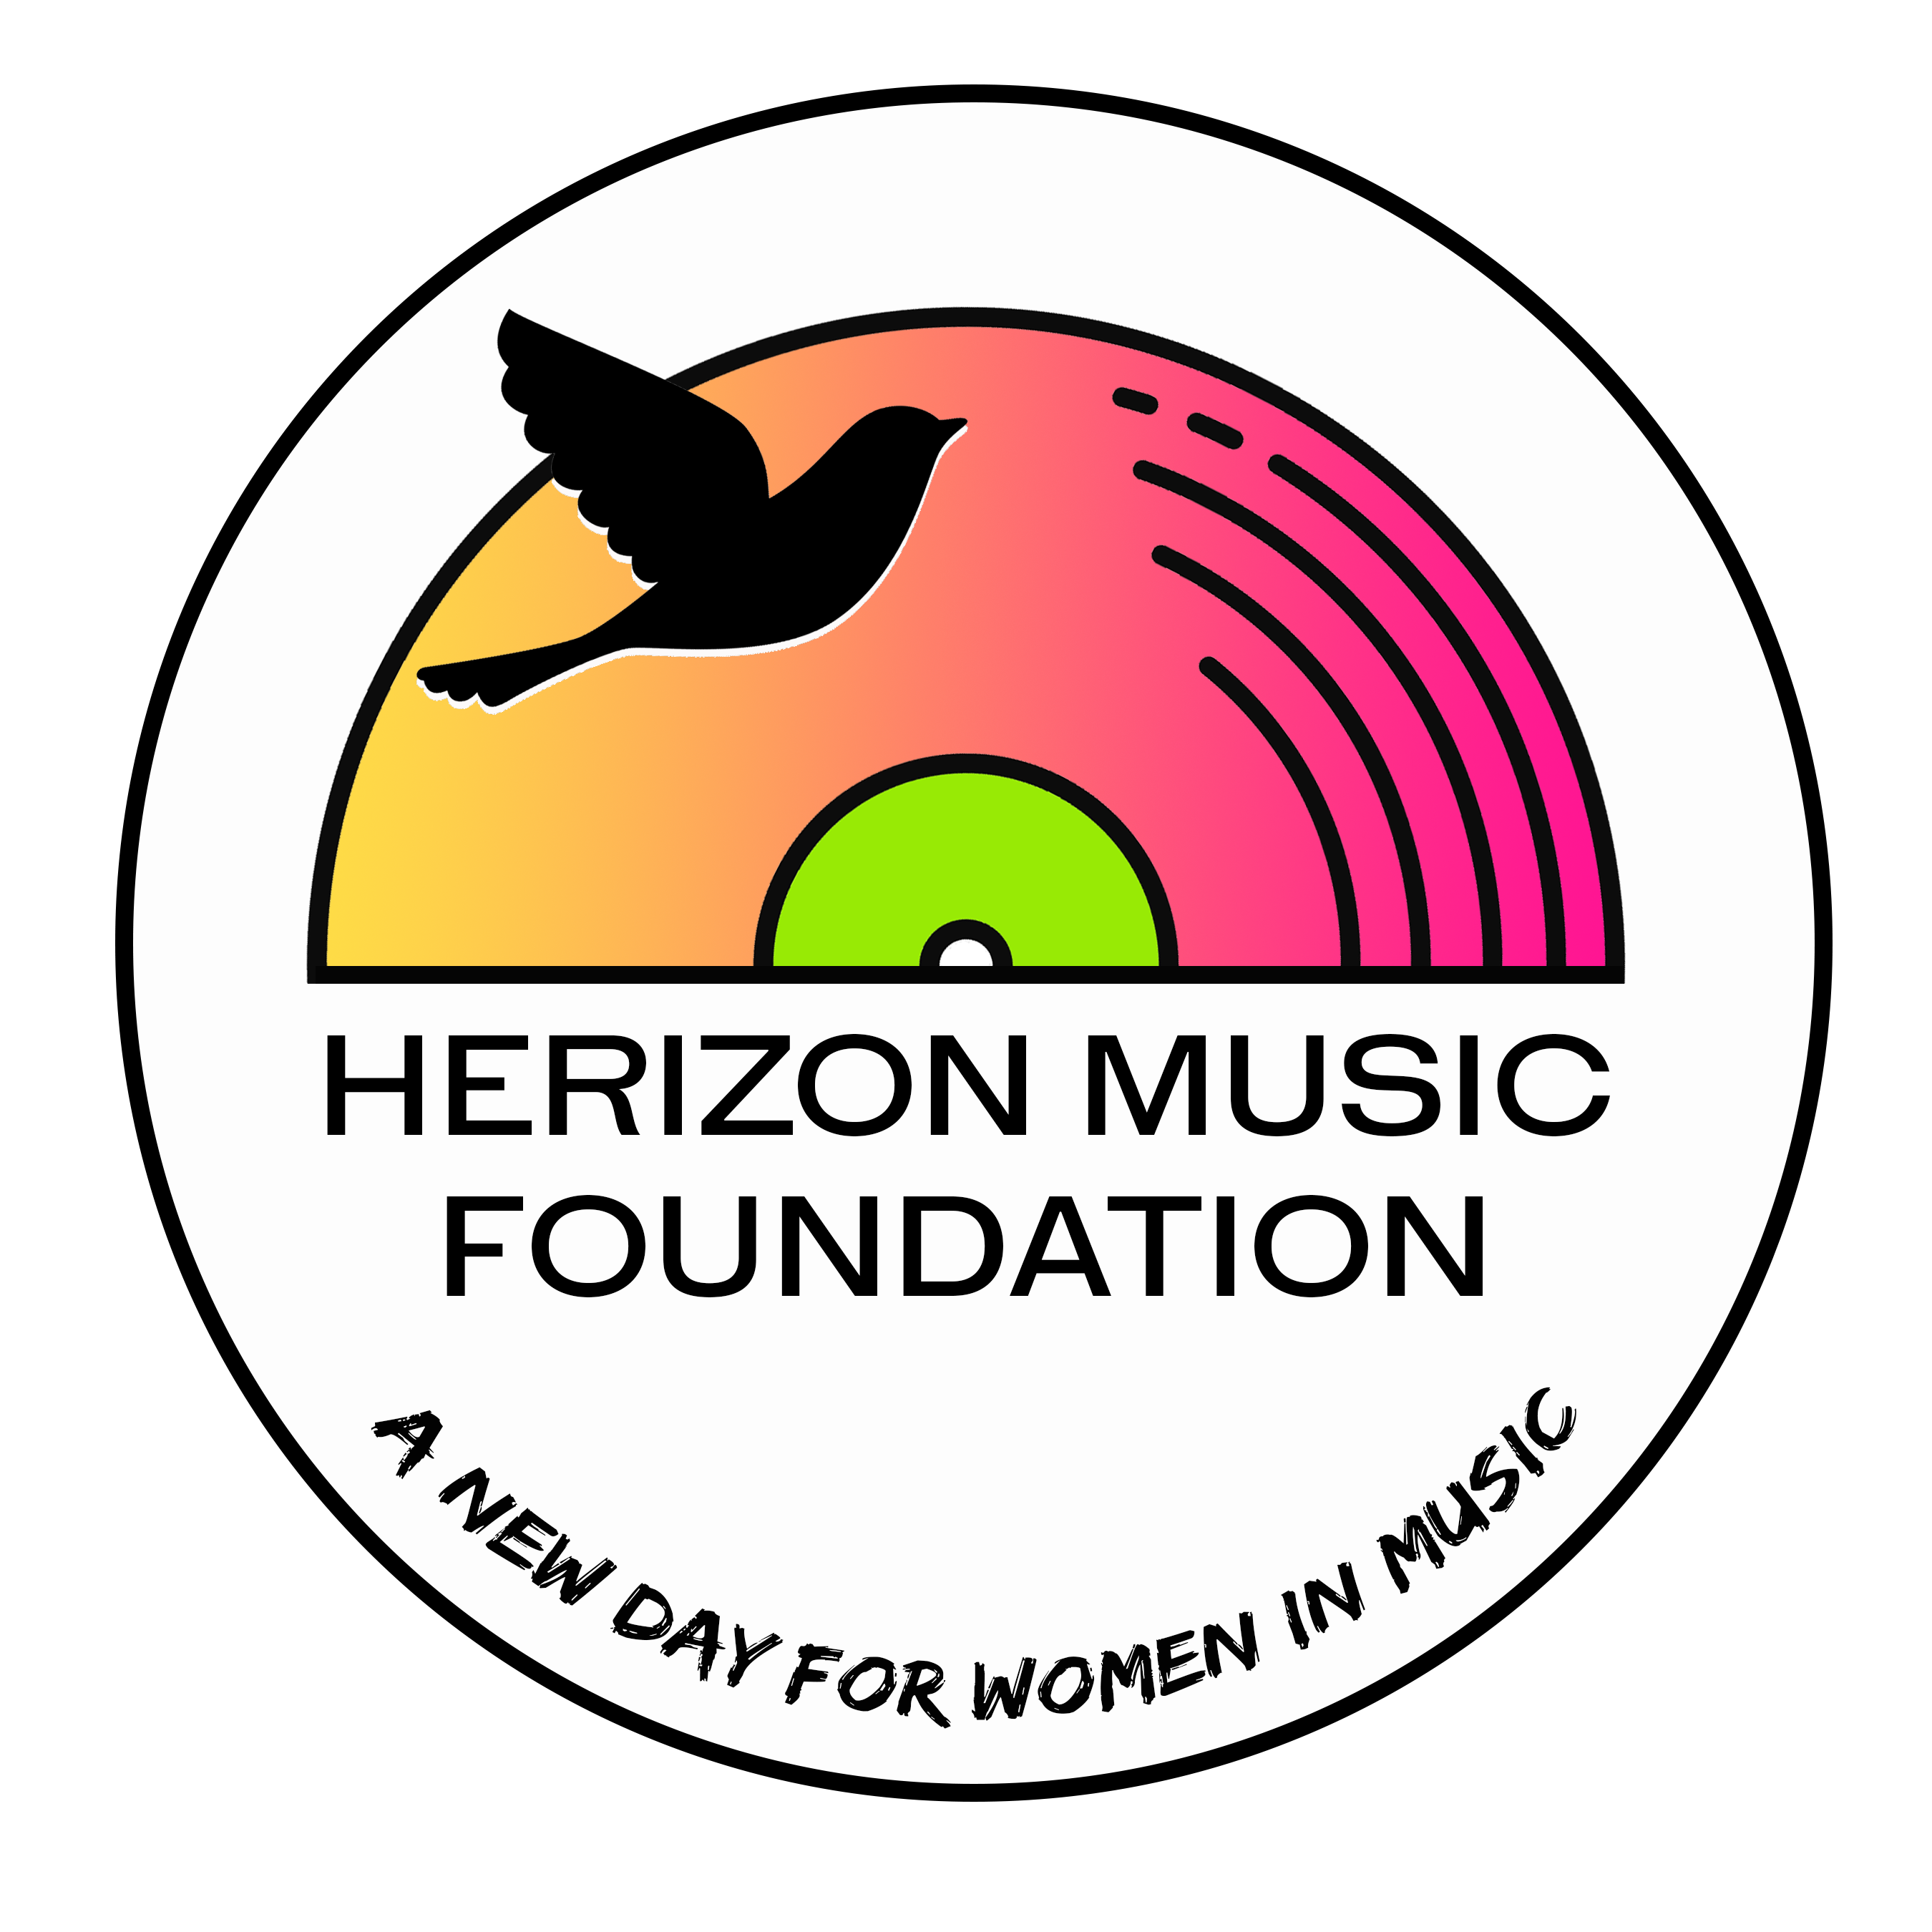 Herizon Music Foundation